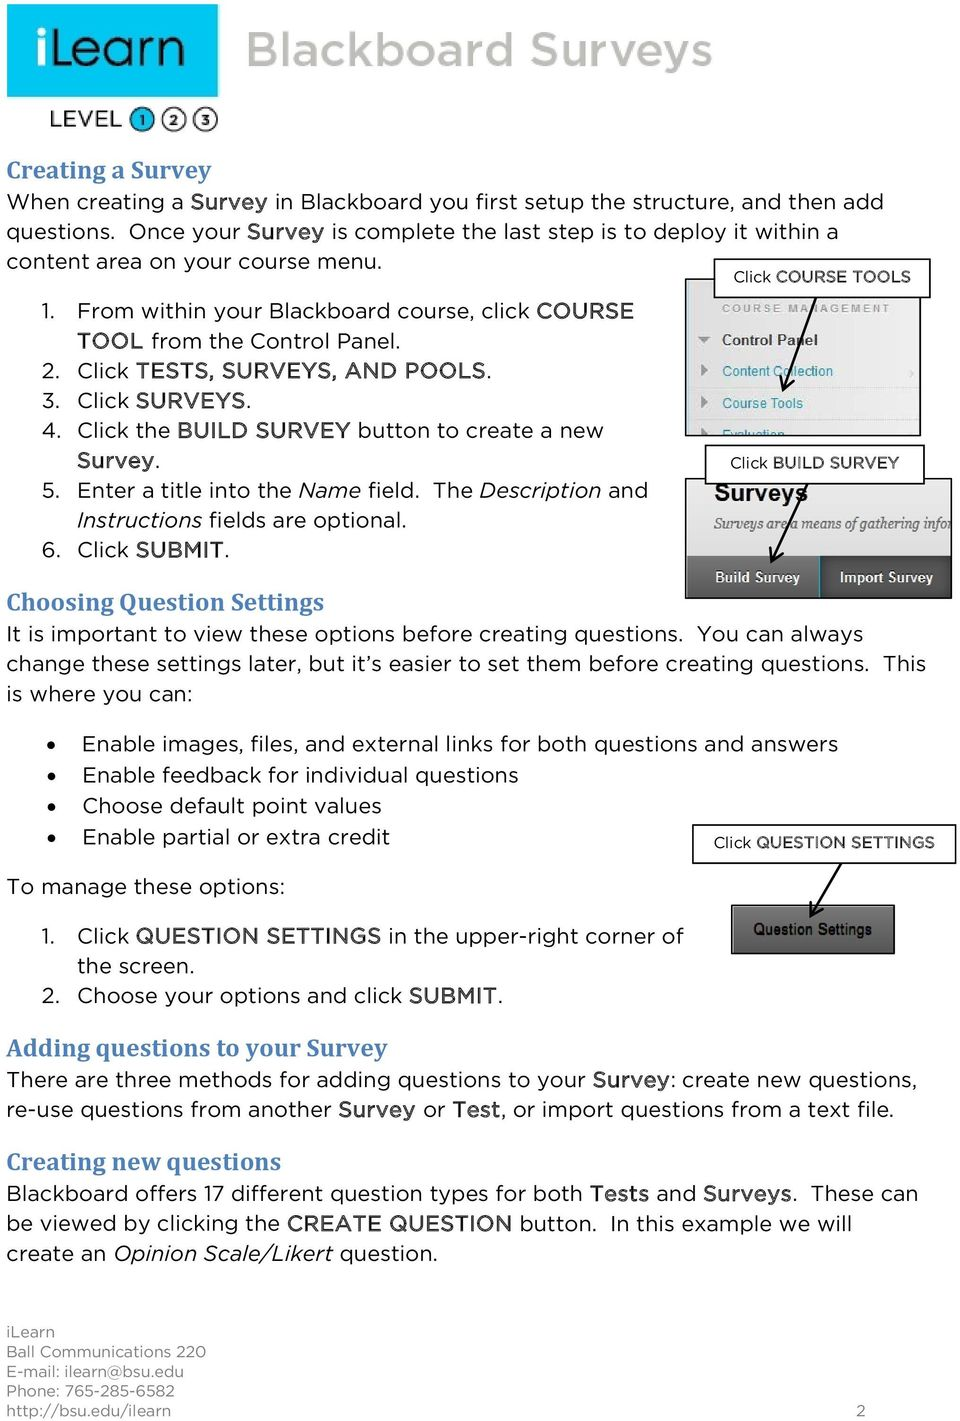 Click TESTS, SURVEYS, AND POOLS. 3. Click SURVEYS. 4. Click the BUILD SURVEY button to create a new Survey. 5. Enter a title into the Name field. The Description and Instructions fields are optional.